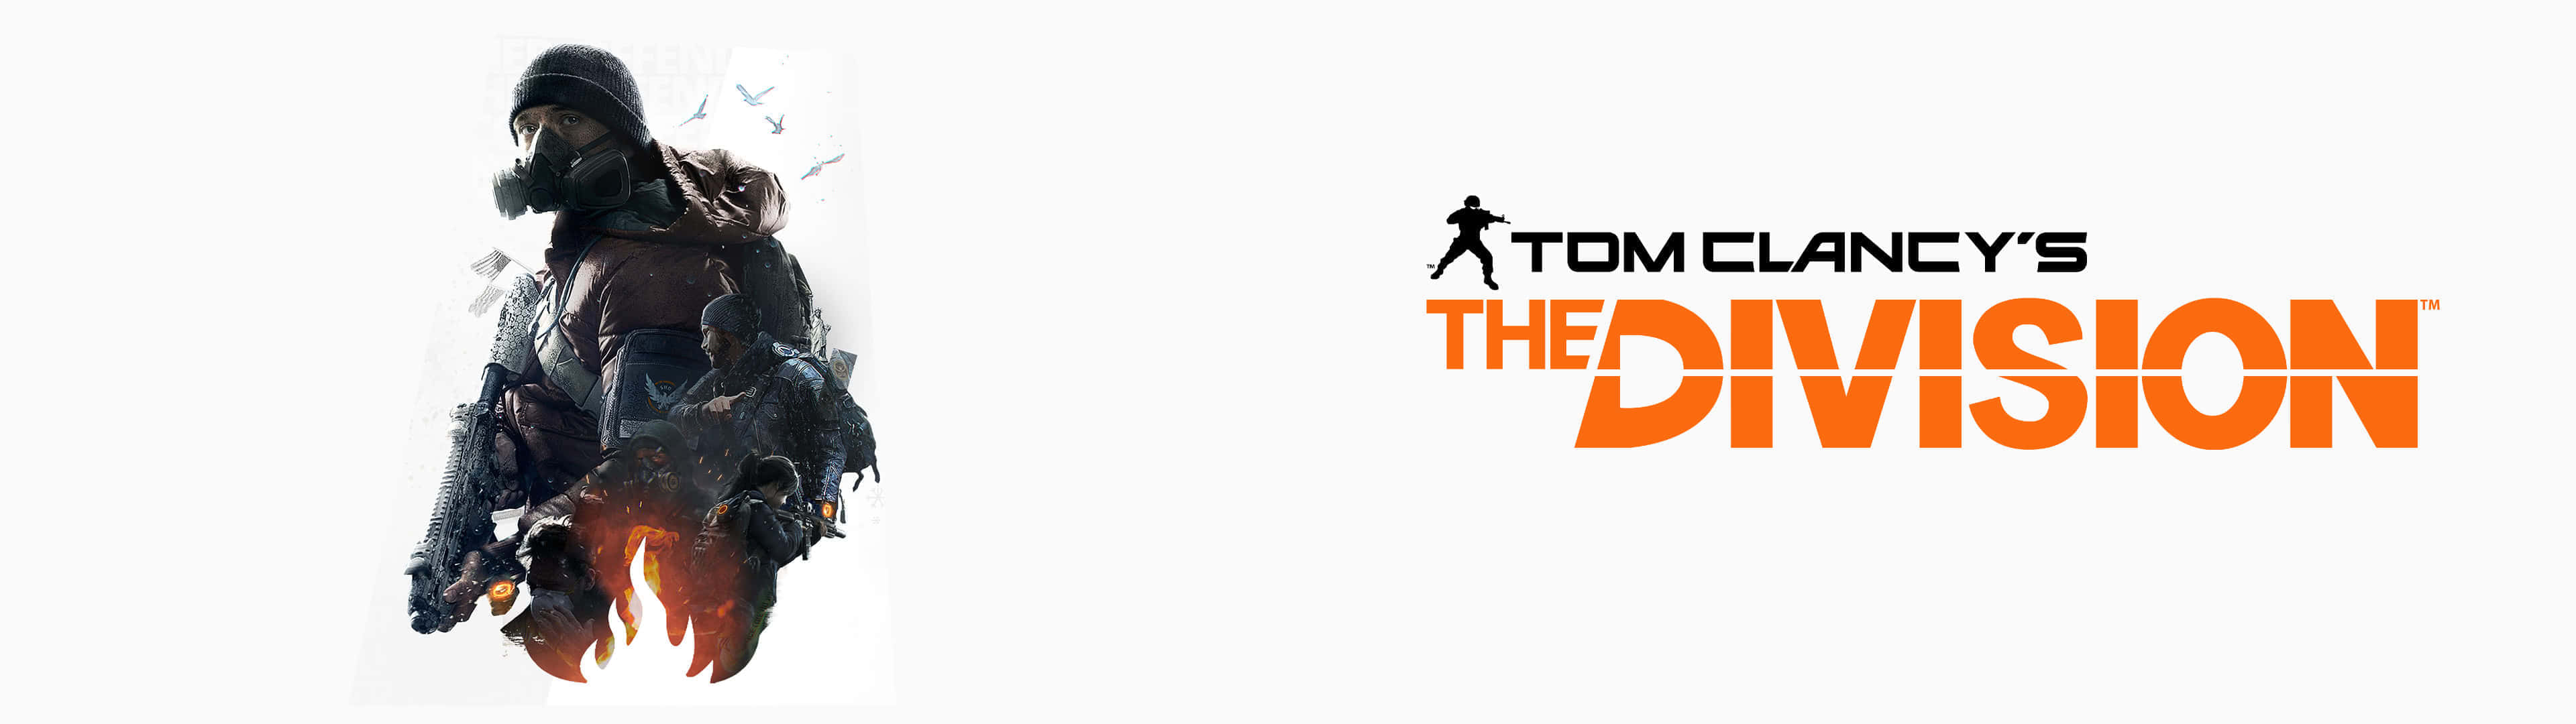 tom clancy the division dual monitor wallpaper